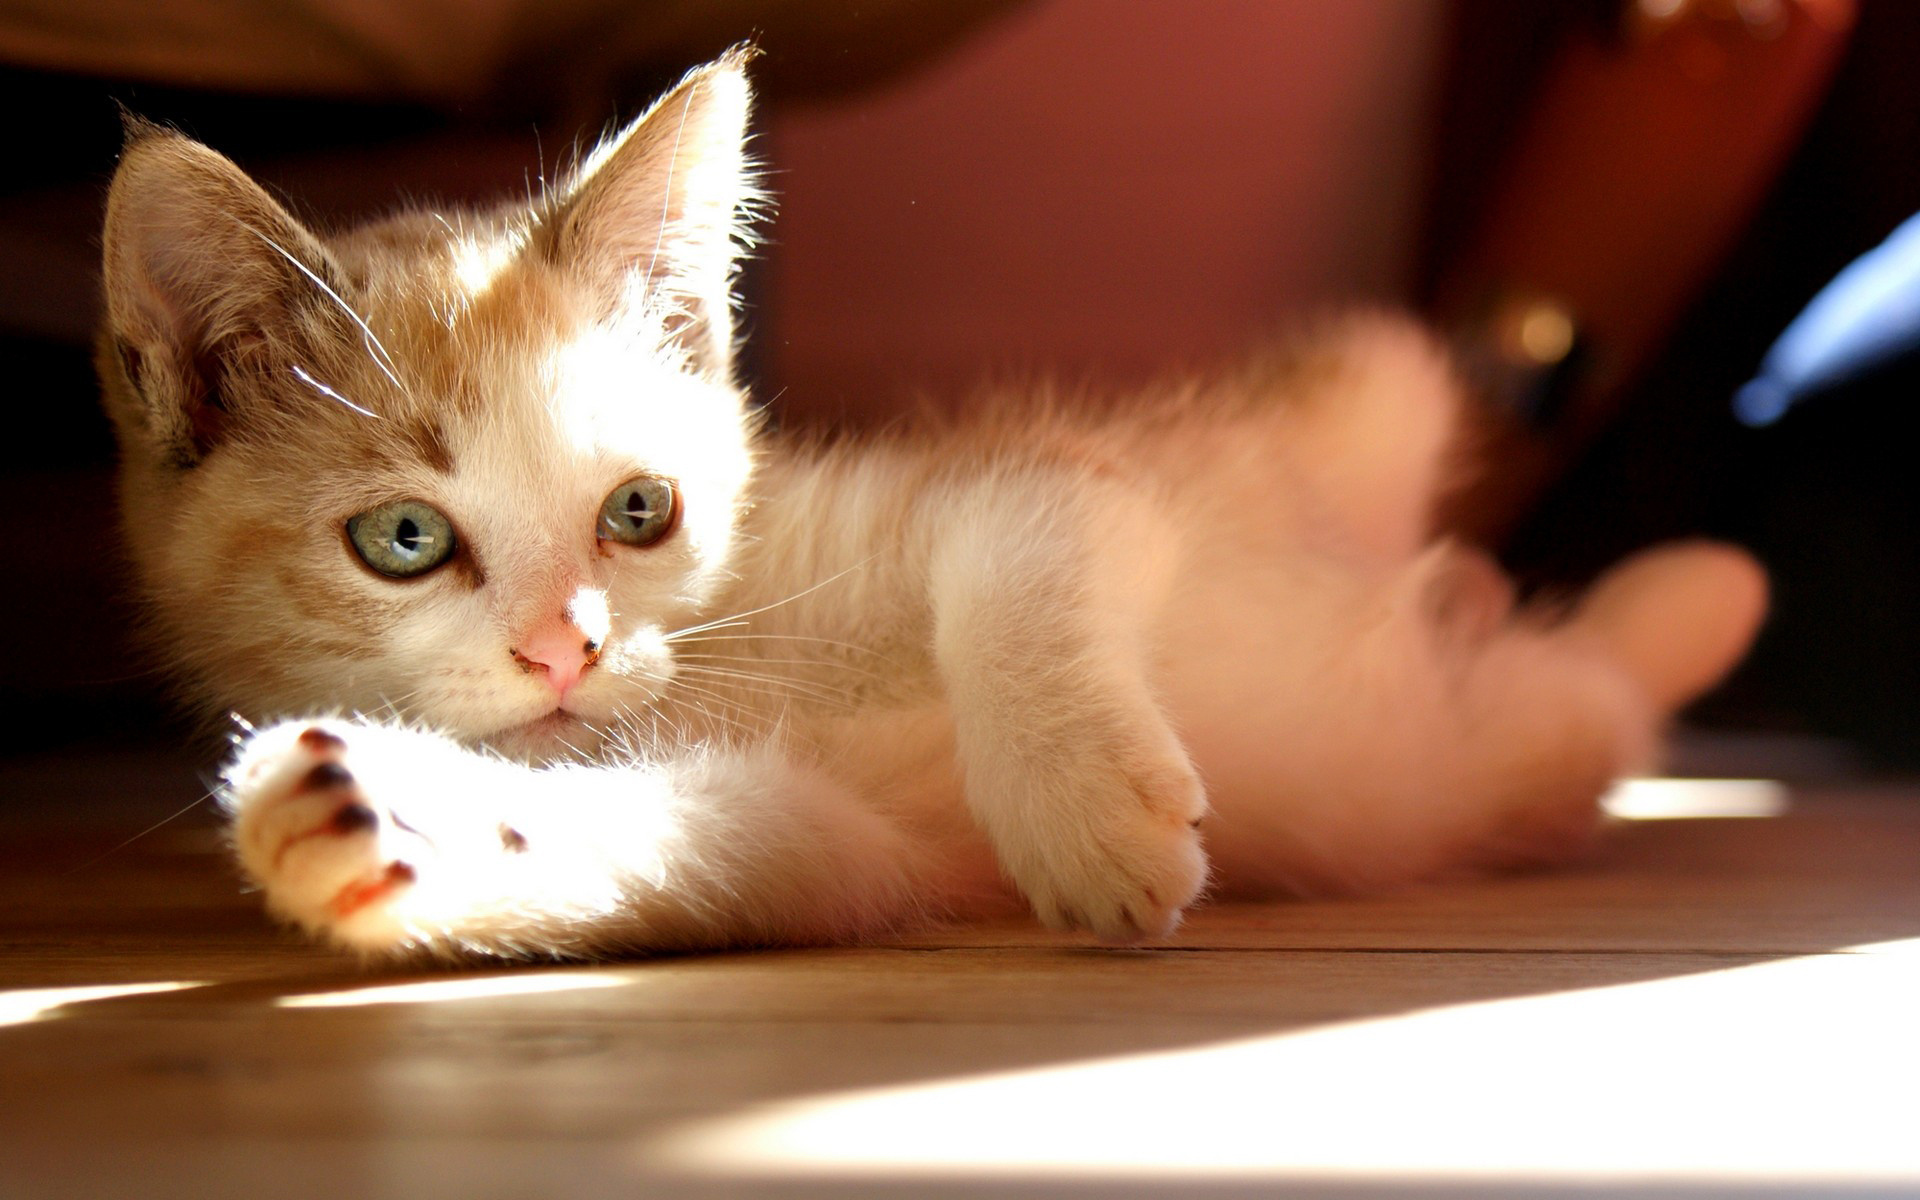 Animals Cats Kittens Cute Babies Face Eyes Whiskers Paws Light Sunlight Ray Shade Play Wallpaper 1920x1200 25824 Wallpaperup